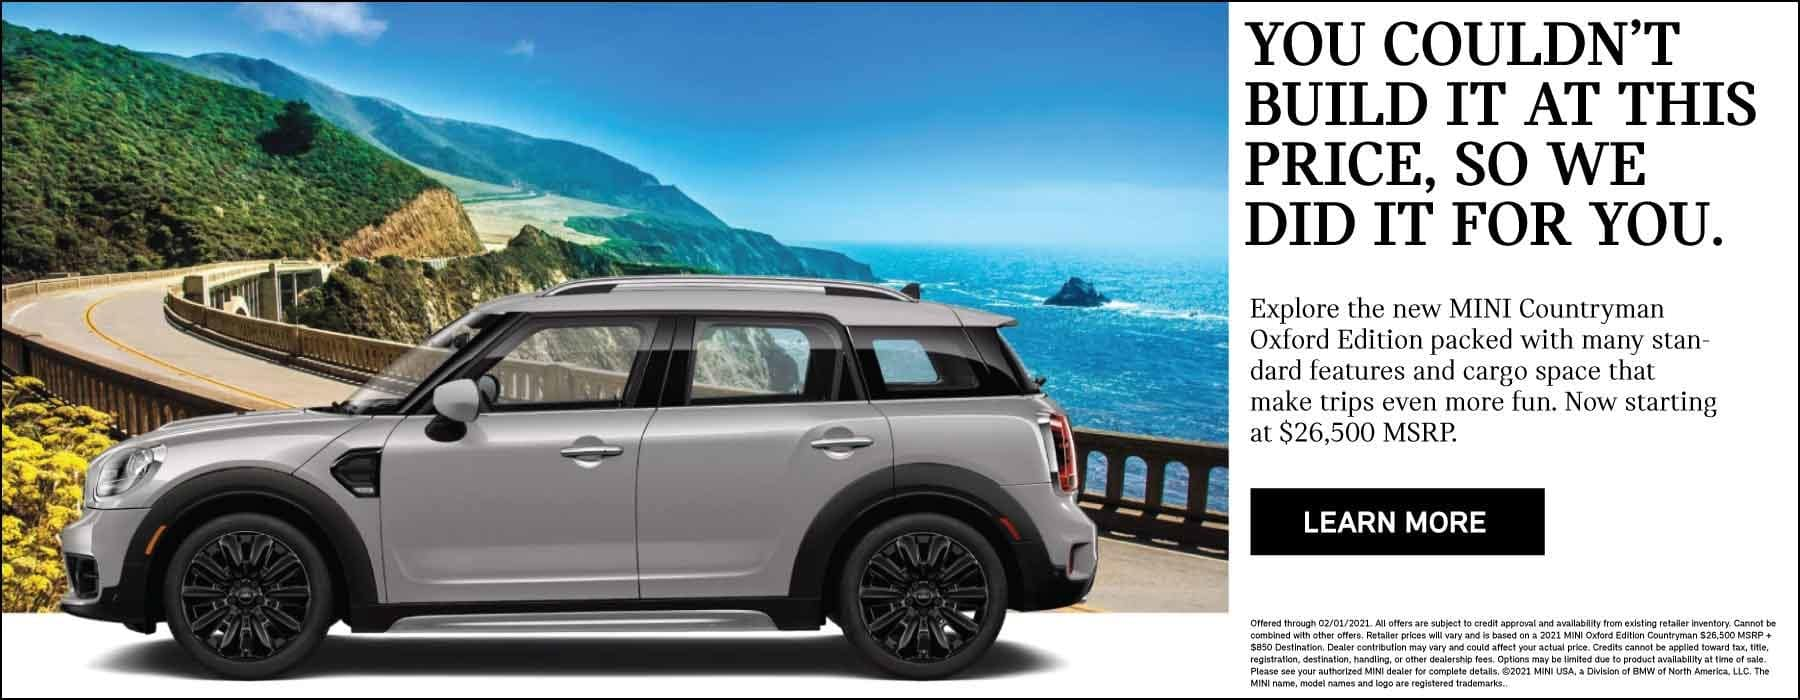 NEW MINI COUNTRYMAN OCFORD EDITION STARTING AT $26,500 MSRP. SEE DEALER FOR DETAILS.